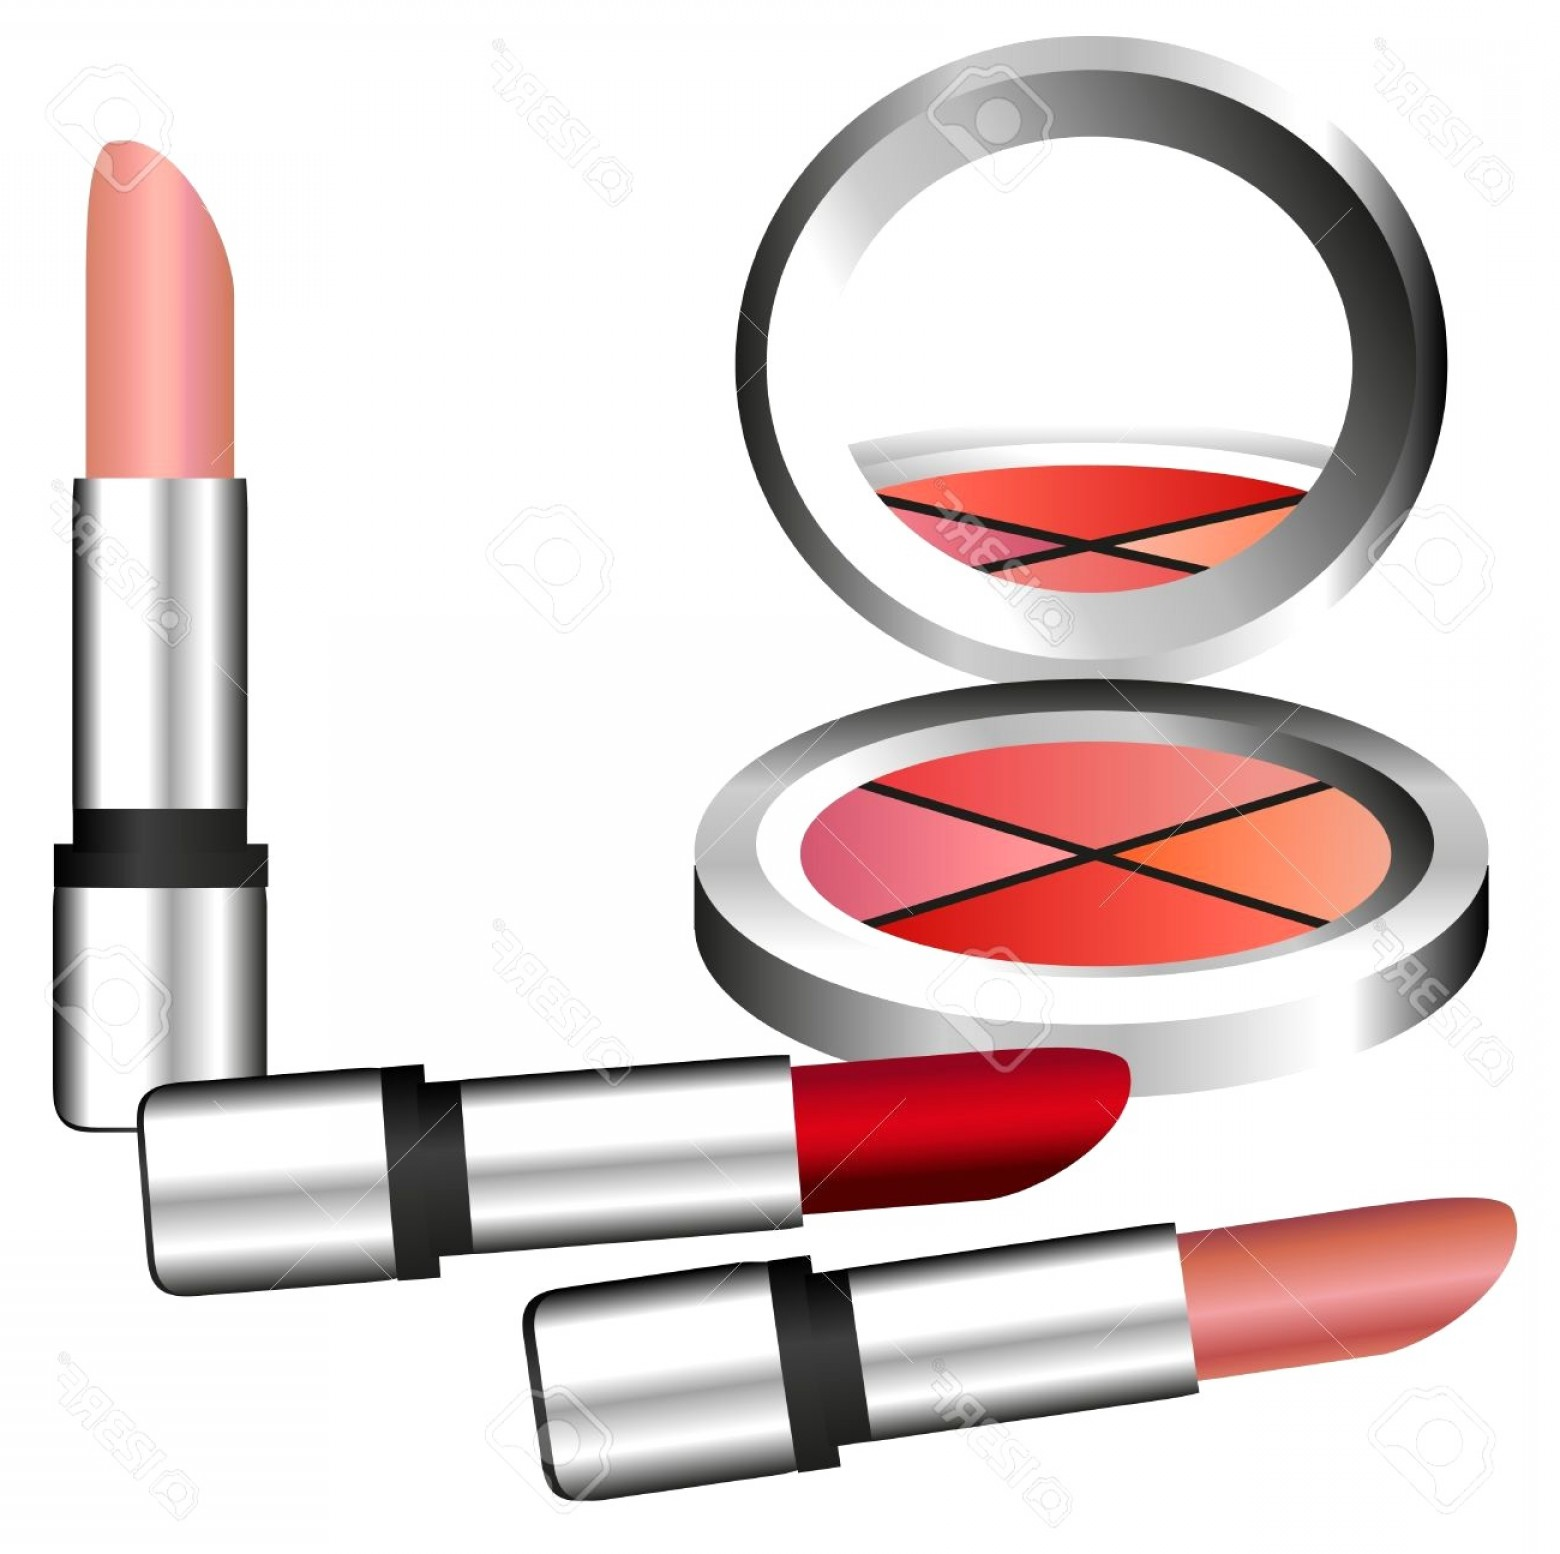 Makeup Clipart Make Up Set With Eyeshadow And Lipstick Stock Vector.